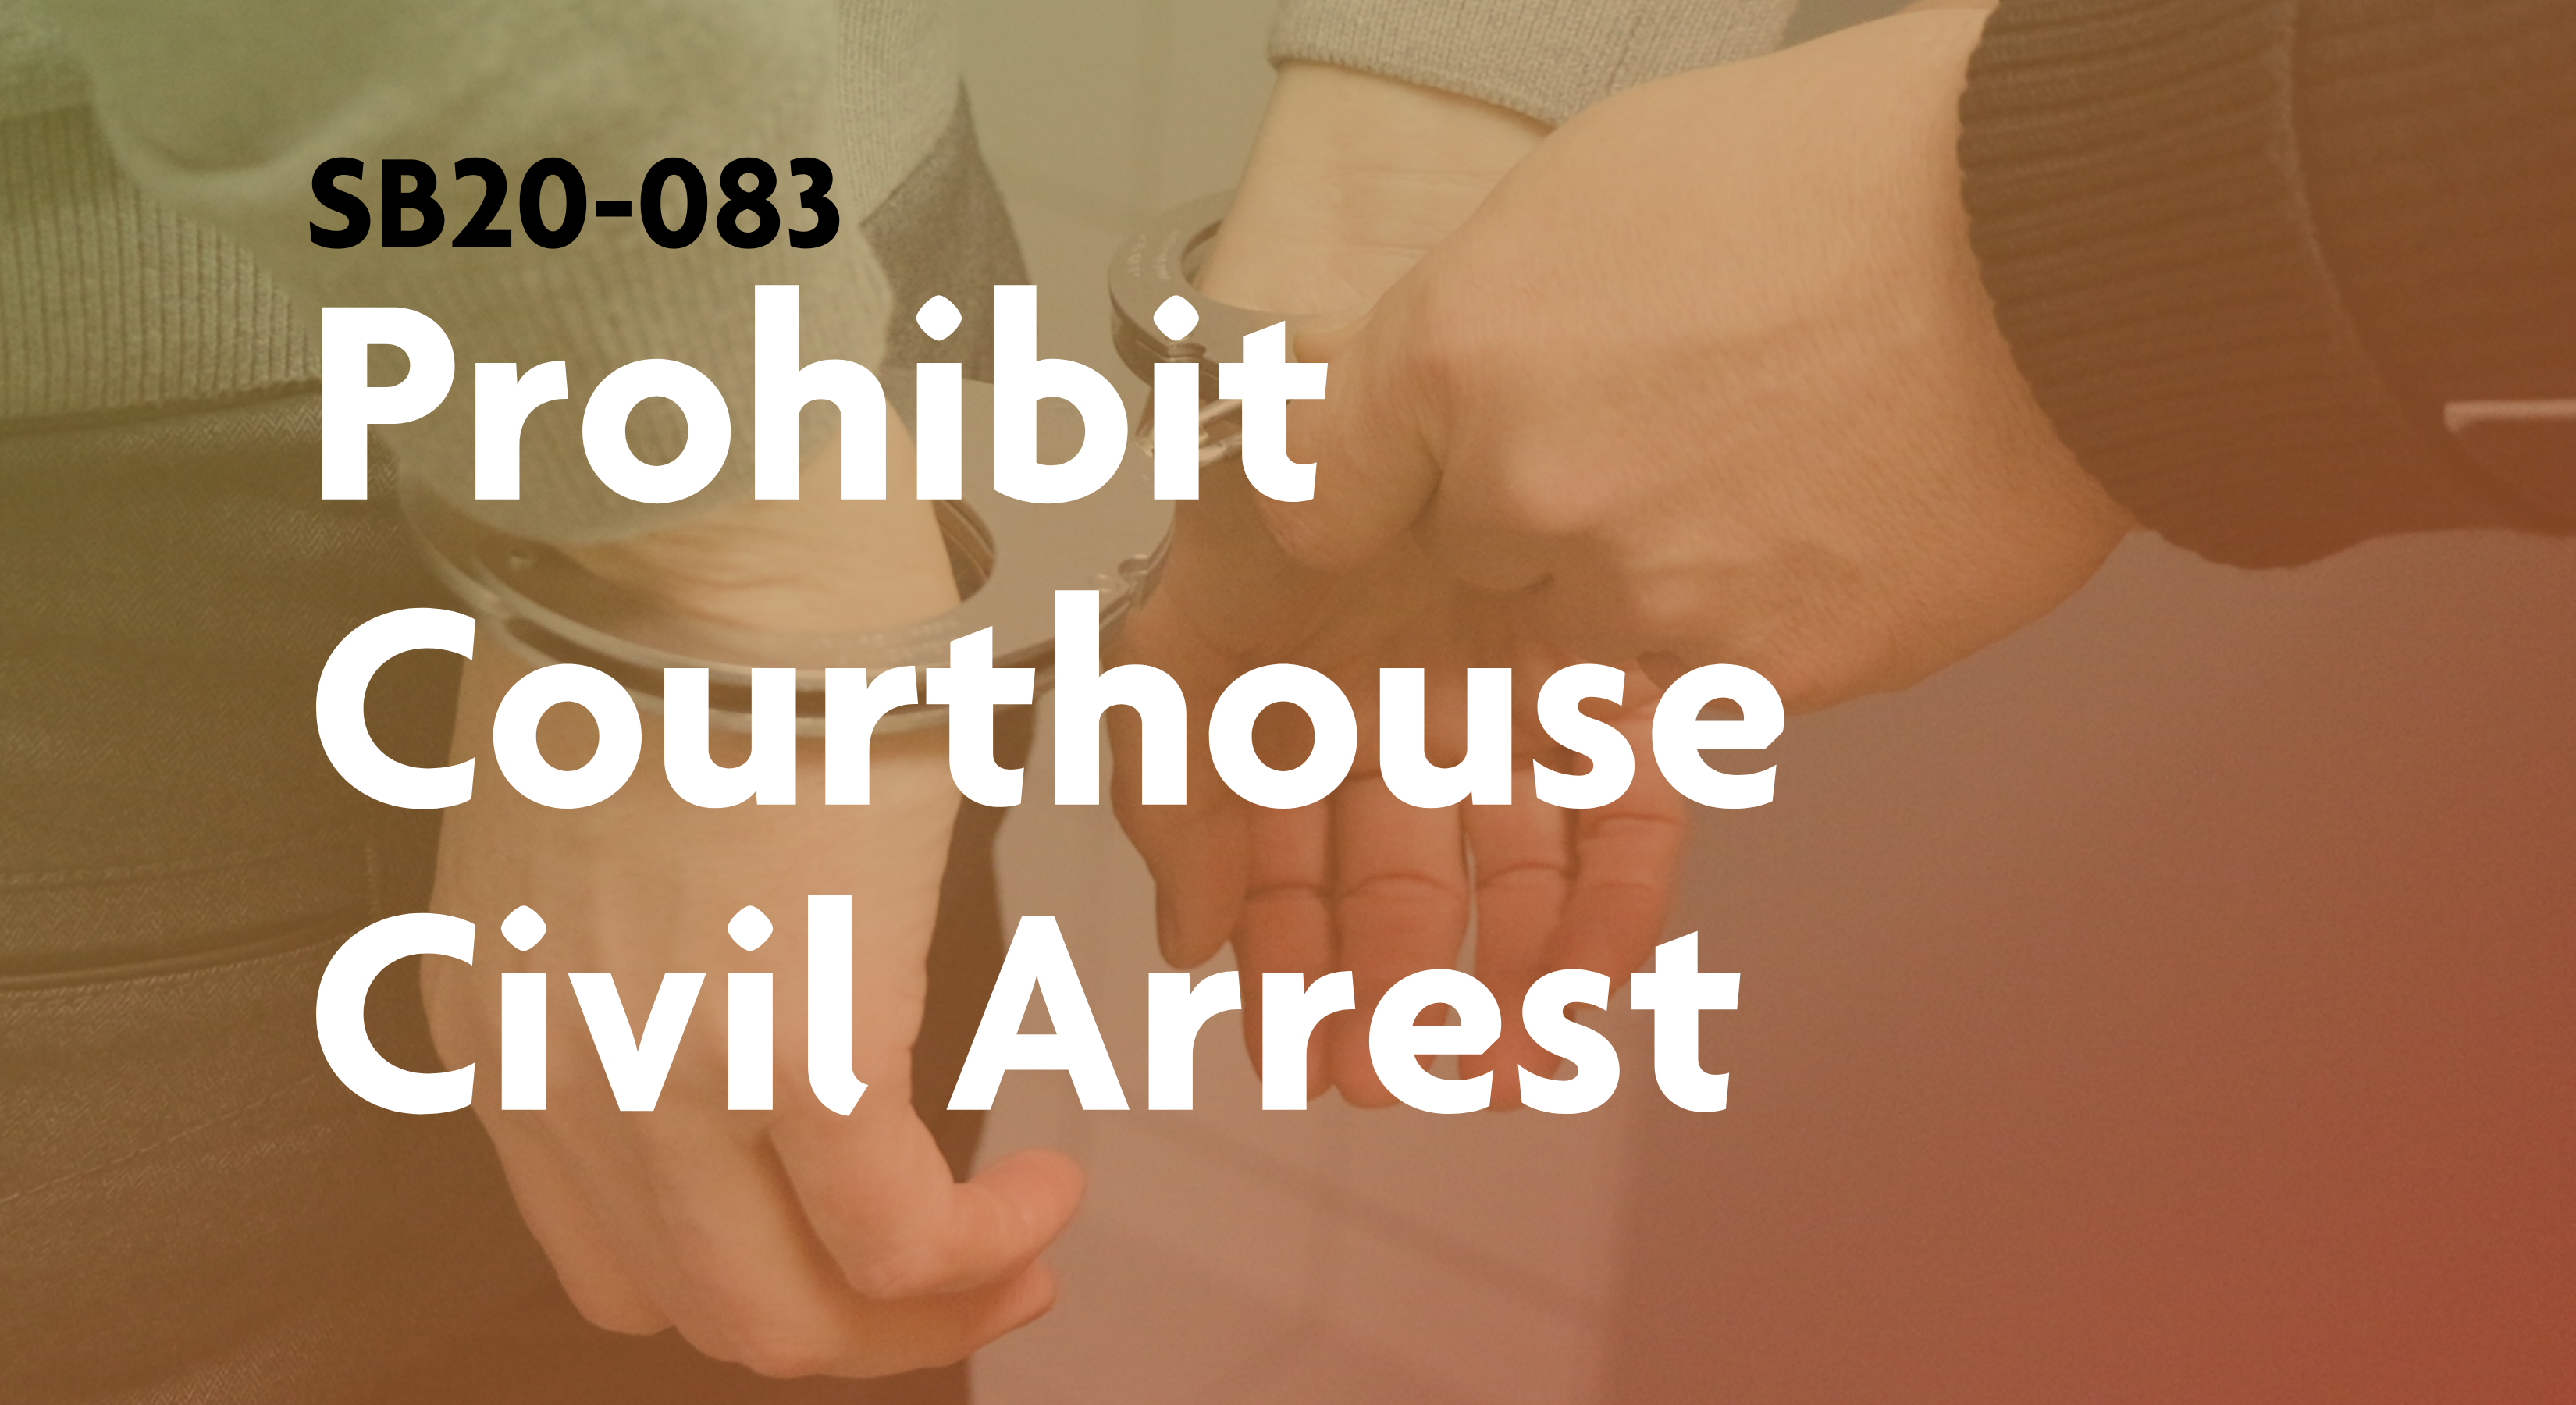 Prohibit Courthouse Civil Arrest linked image